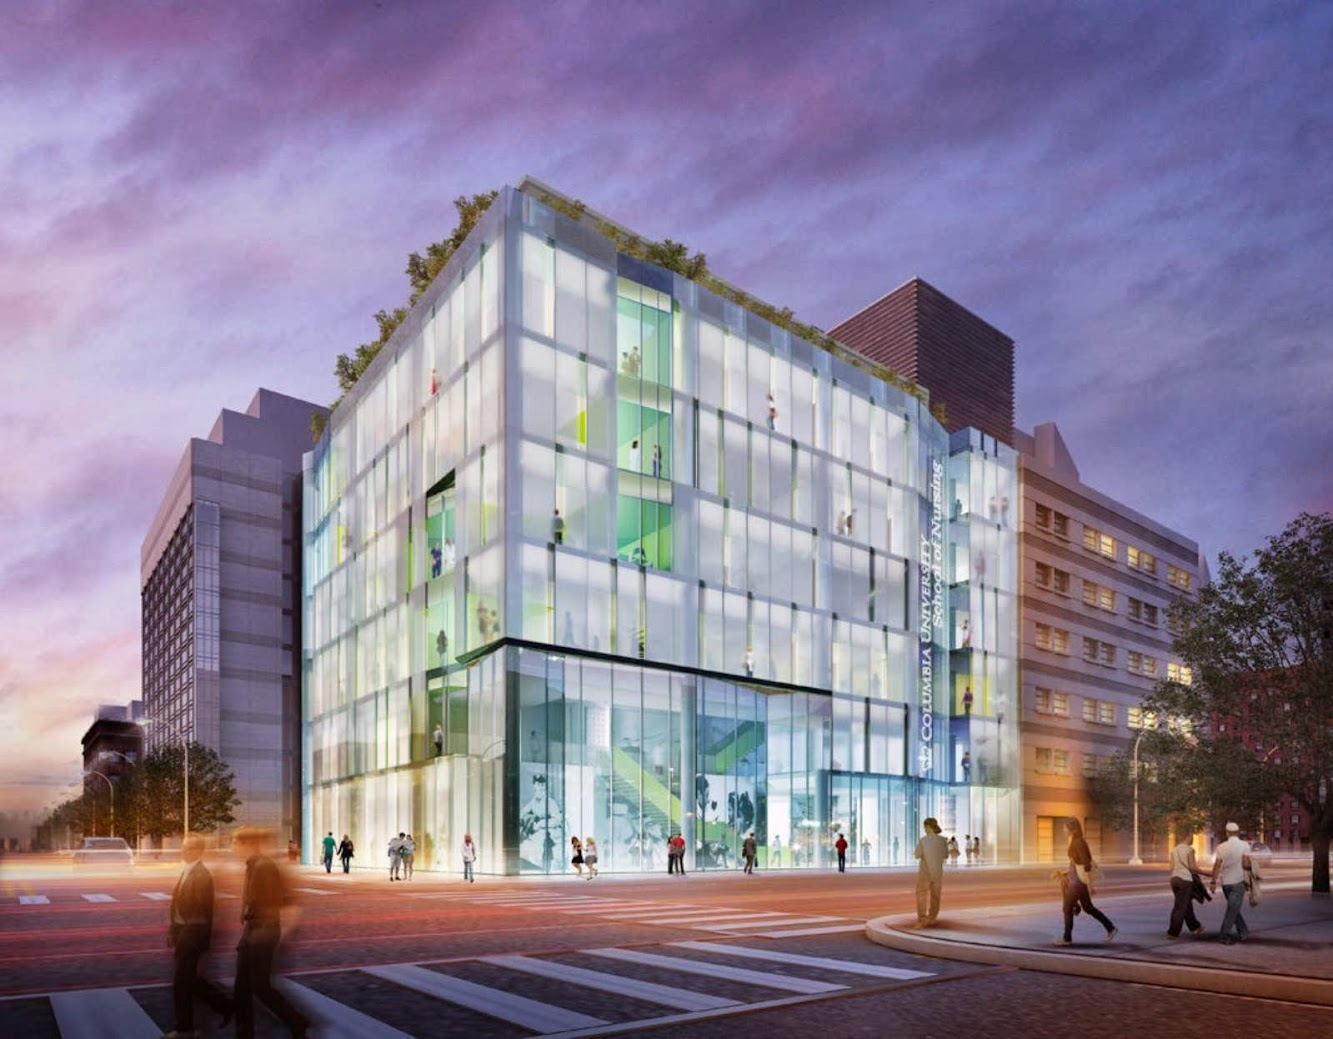 Manhattan, New York, Stati Uniti: Columbia University to Build New Nursing School by Co|FXFOWLE